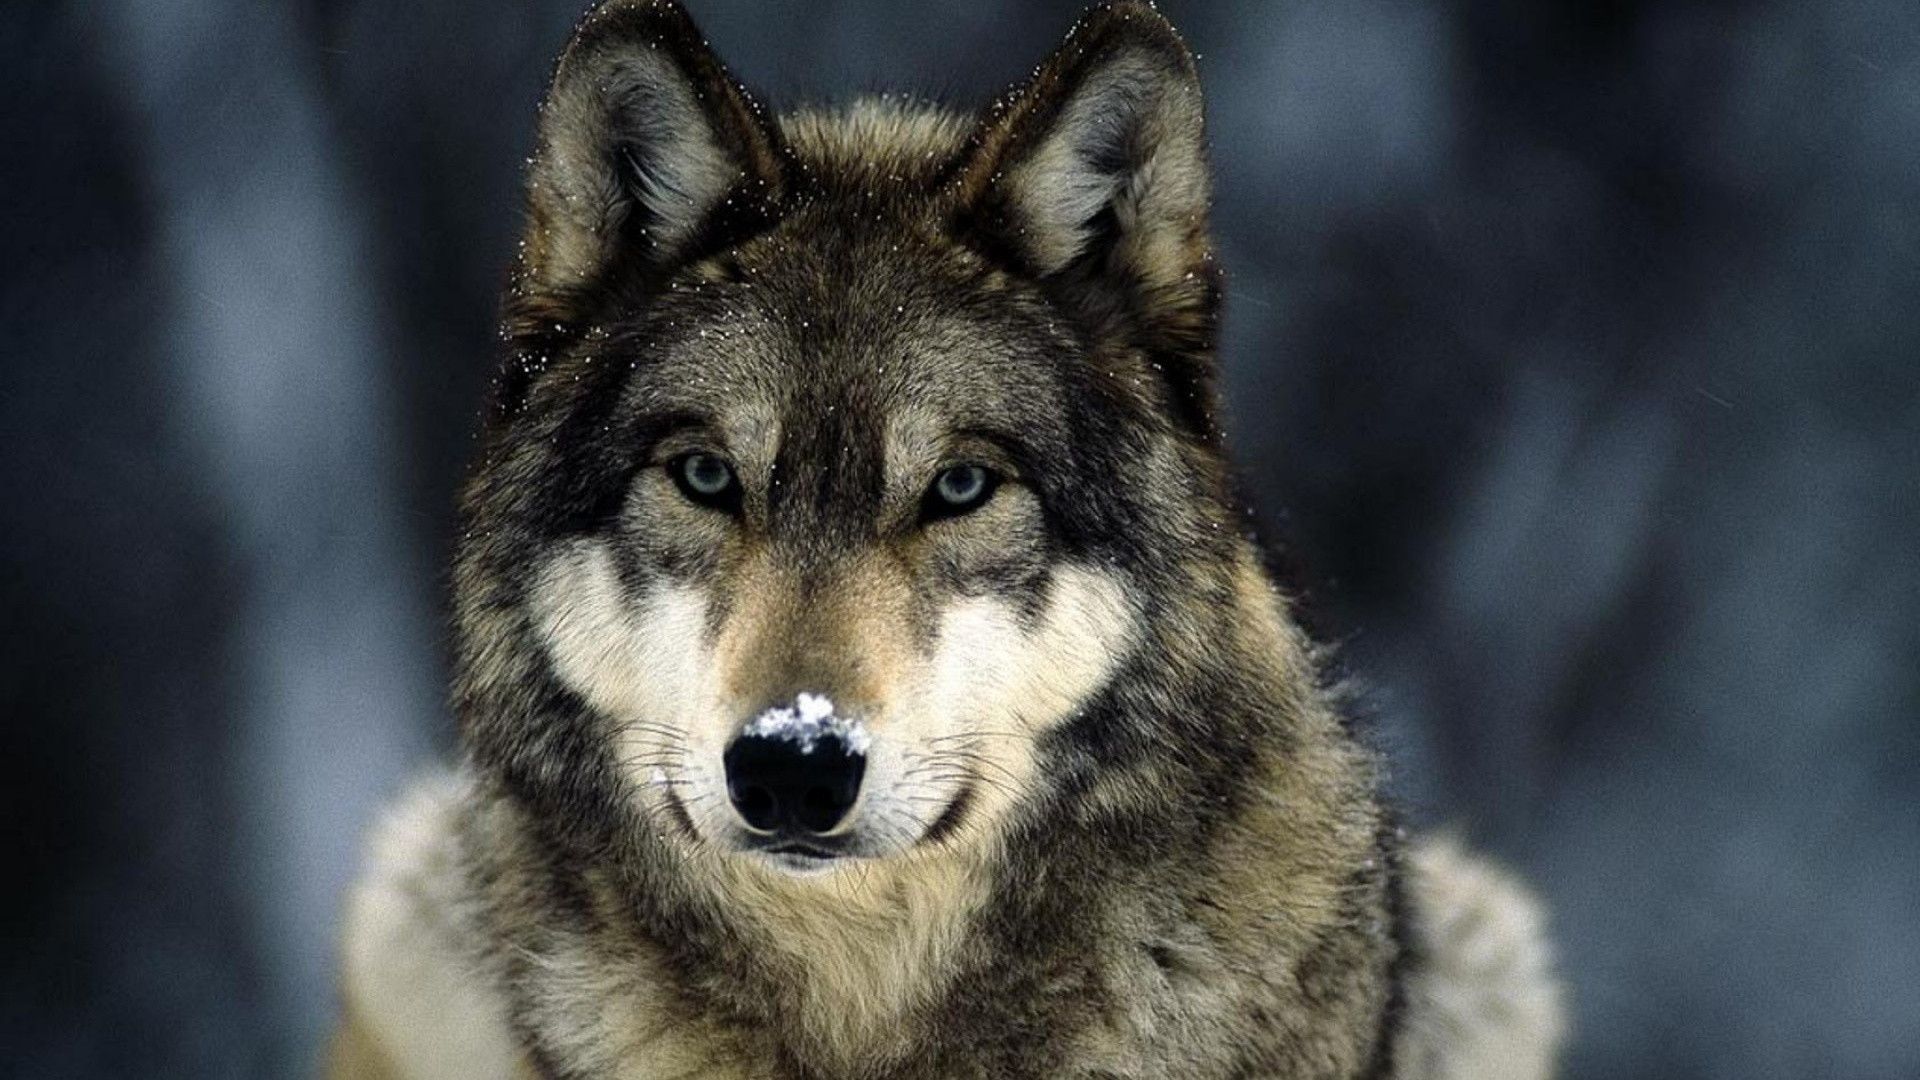 Hd wallpaper wolf - Wolf Wallpapers 1920x1080 Wallpaper Cave